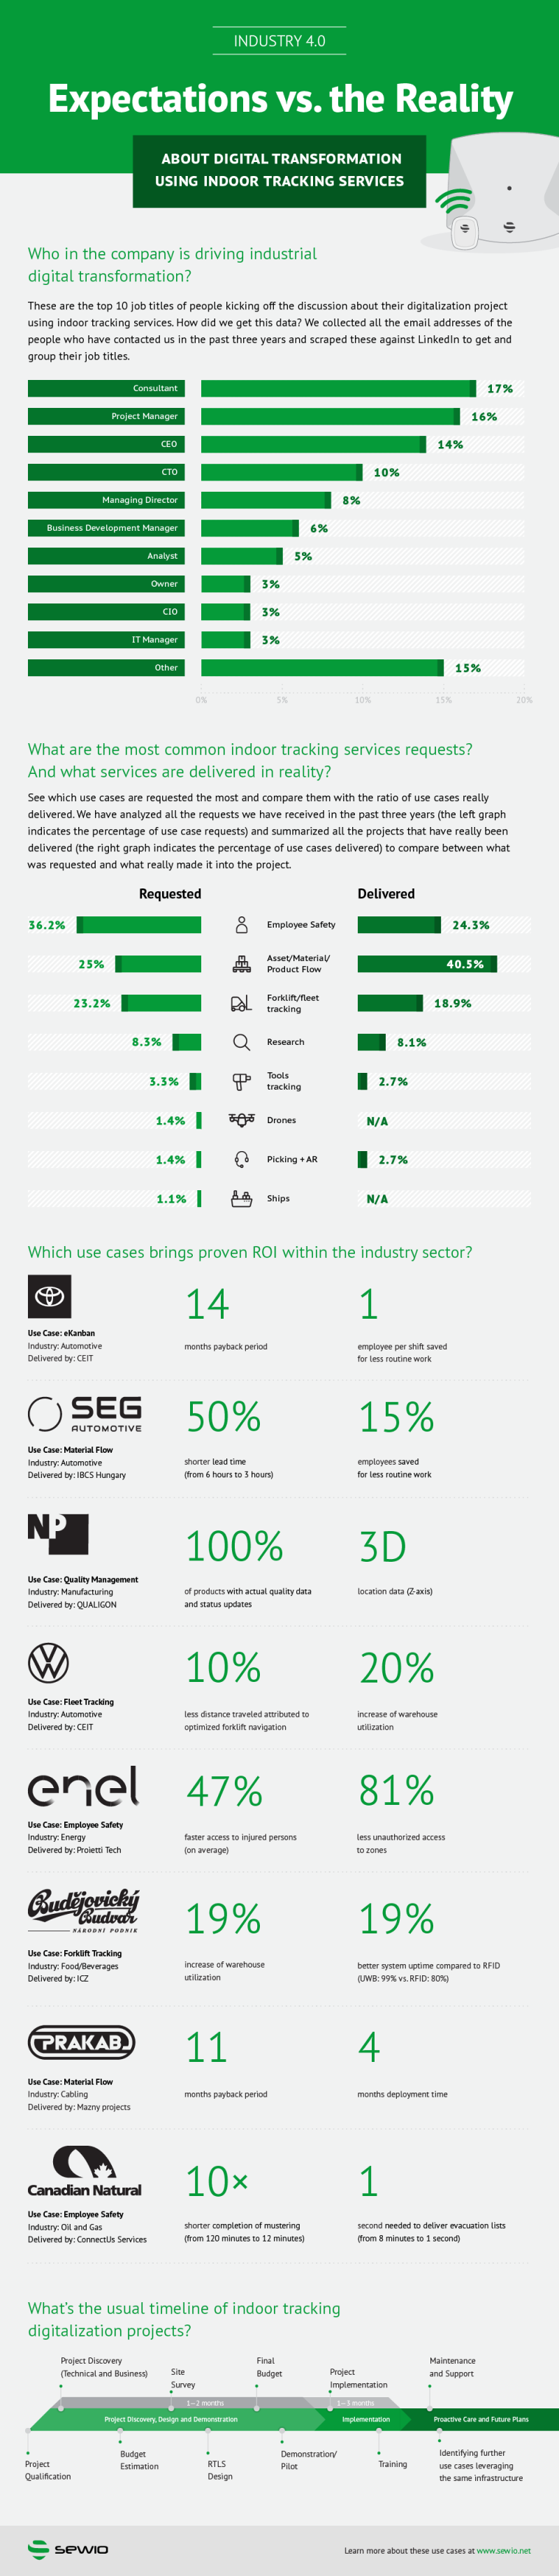 Industry 4.0: Expectations vs. Reality About Digital Transformation Using RTLS #infographic